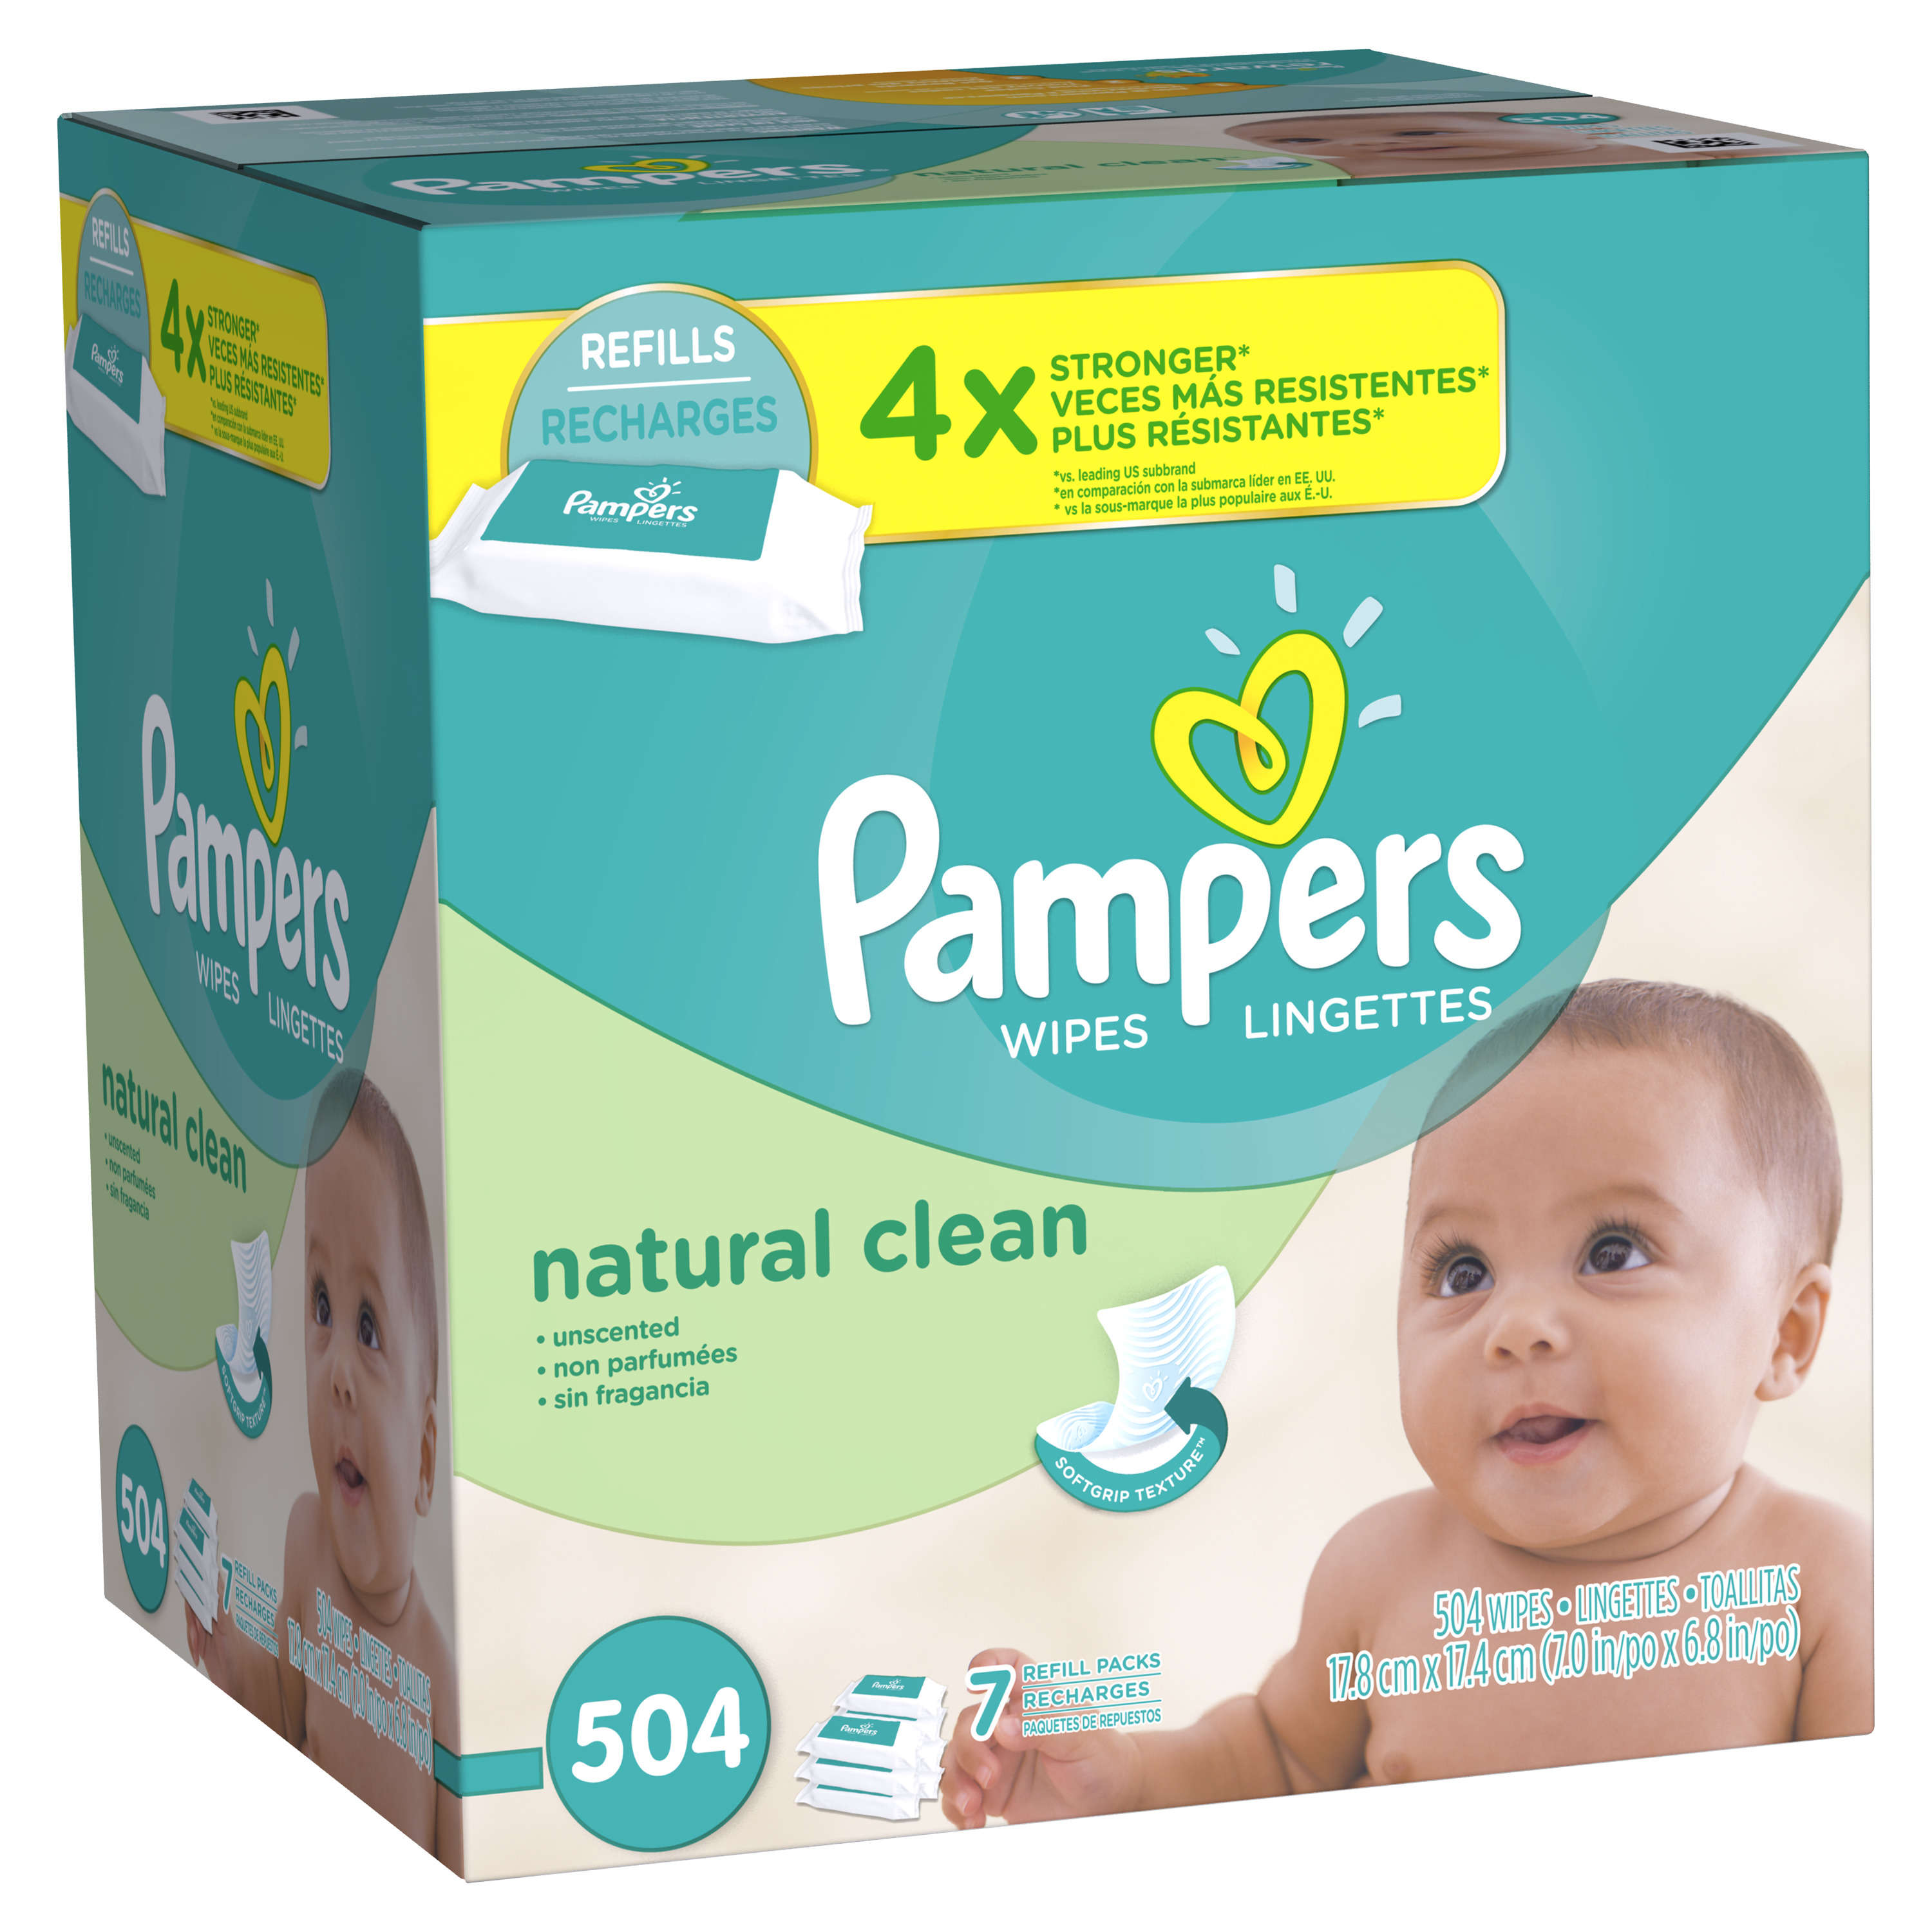 Pampers Baby Wipes Natural Clean 7X Refill 504 count